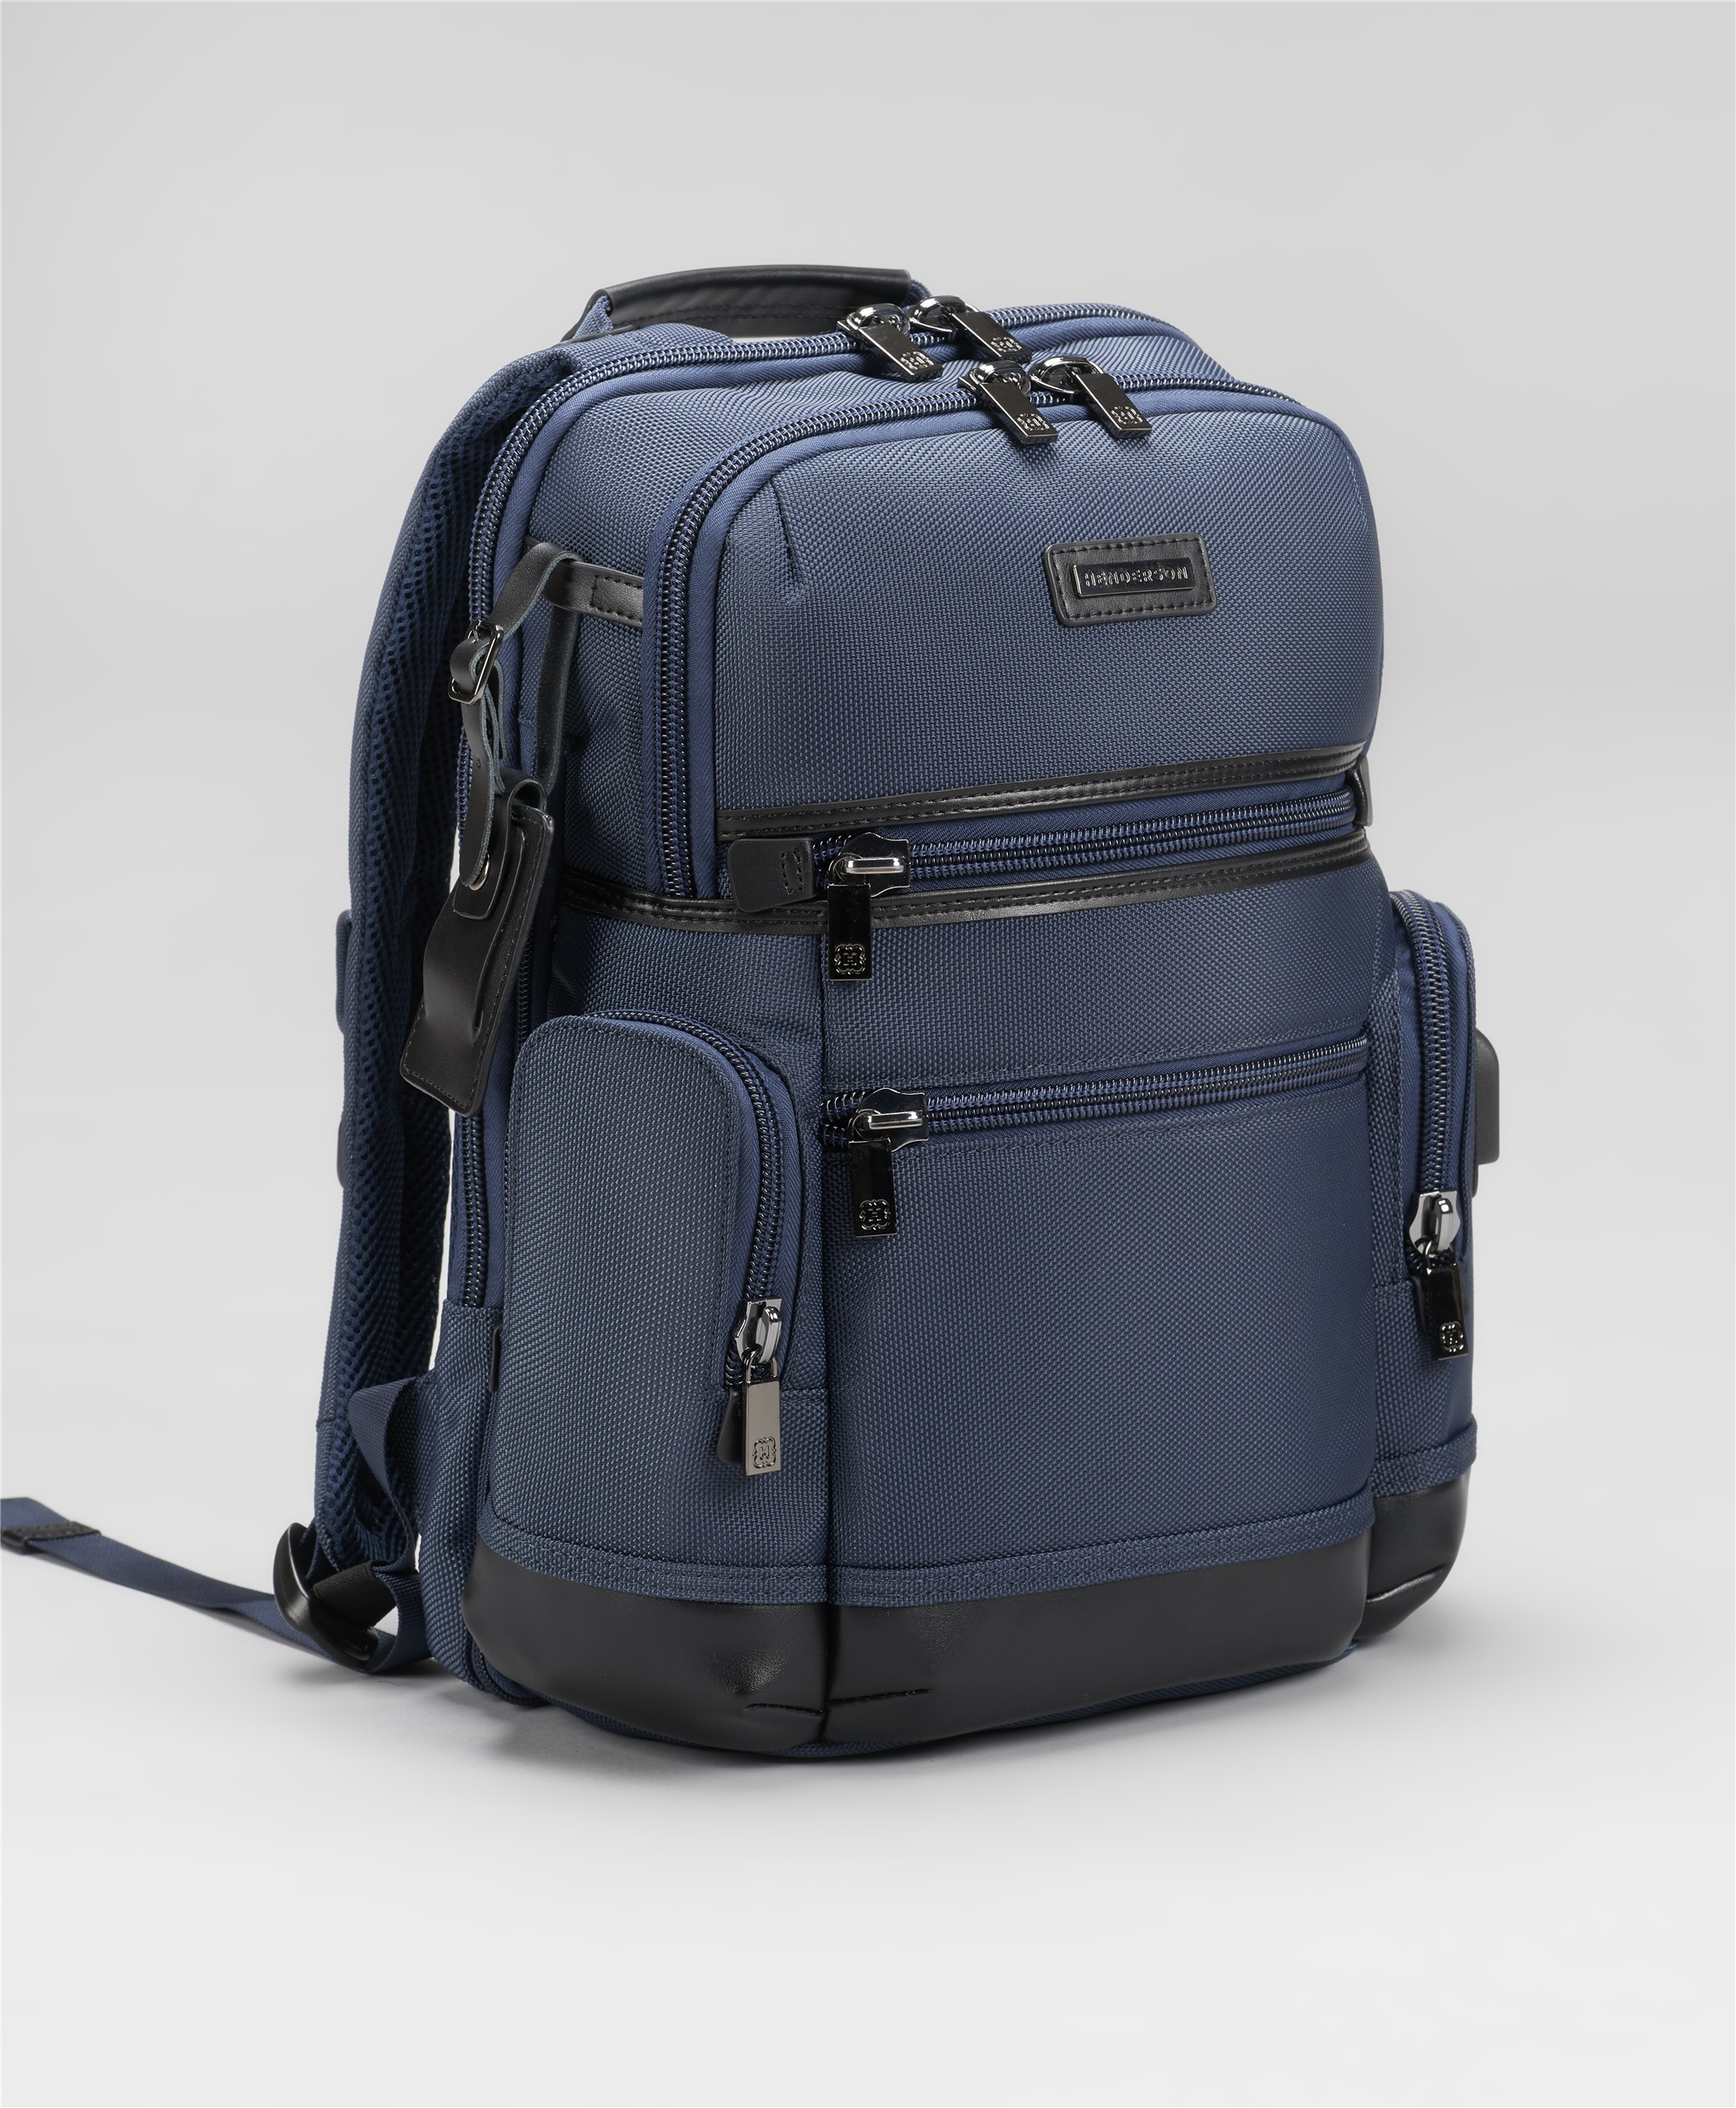 Фото - HENDERSON BG-0310 NAVY bg рюкзак just greyg sbj 4682